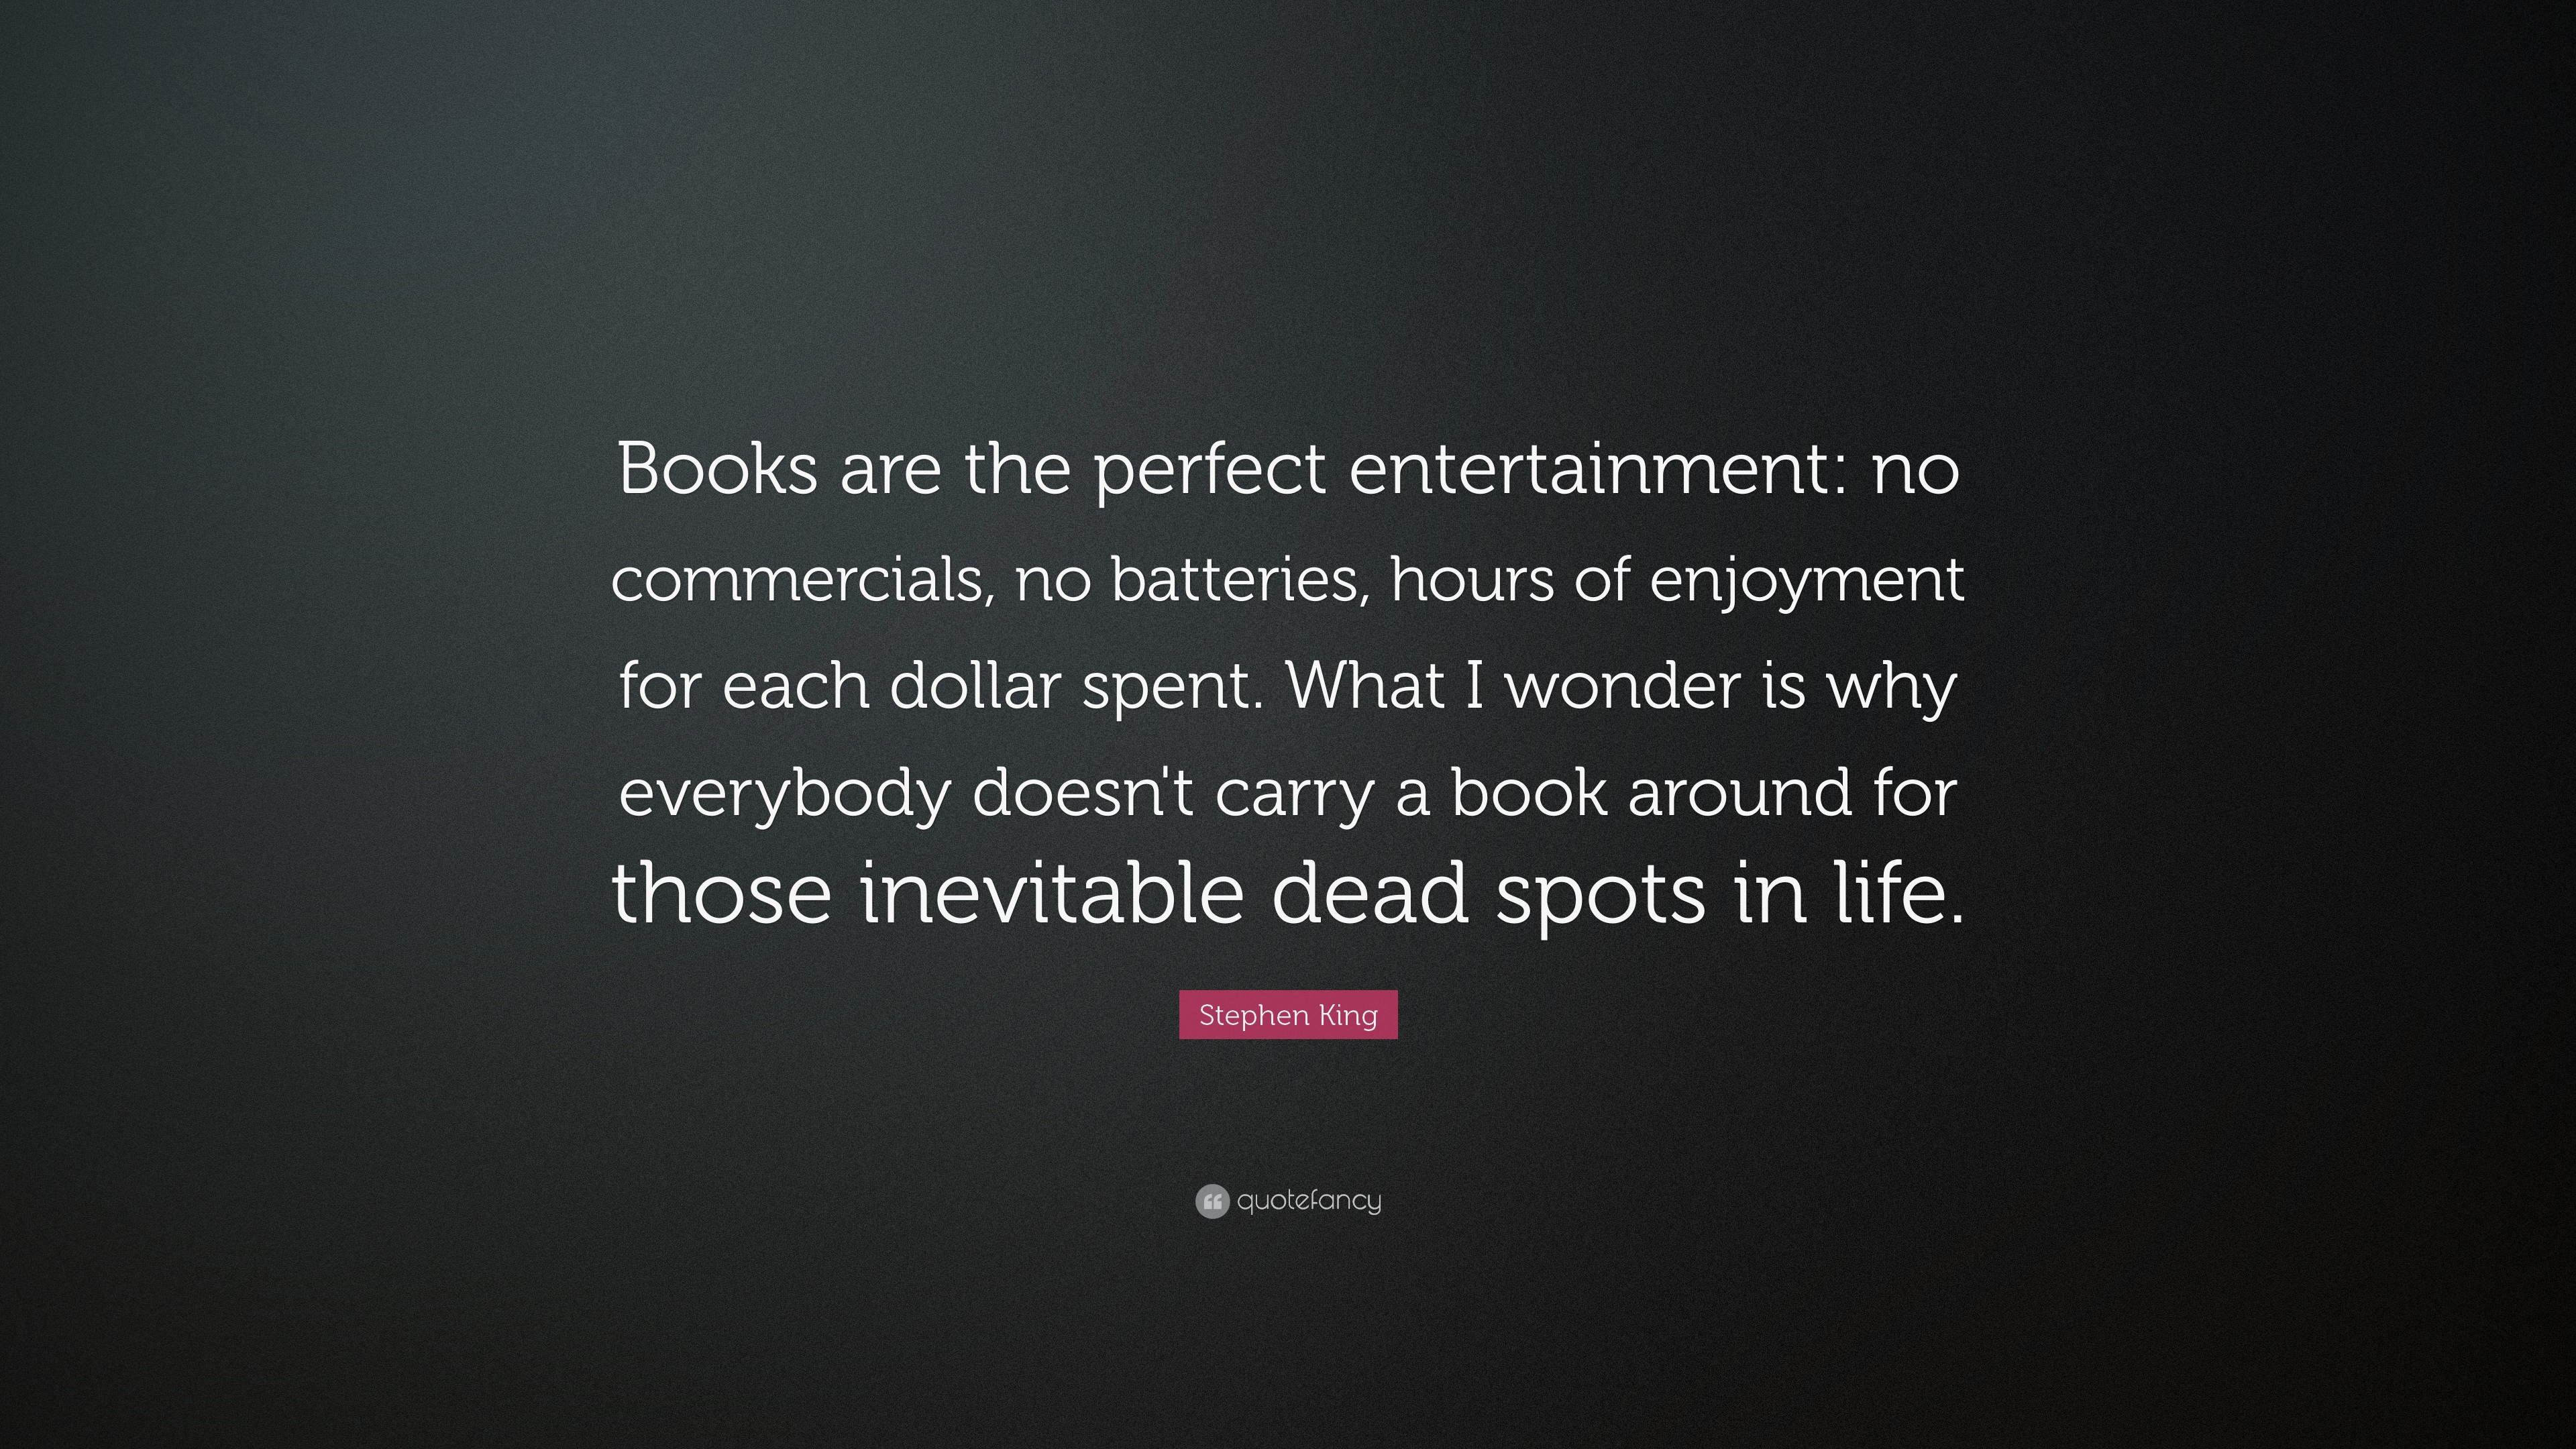 Books With Quotes About Life Quotes About Books And Reading 22 Wallpapers  Quotefancy